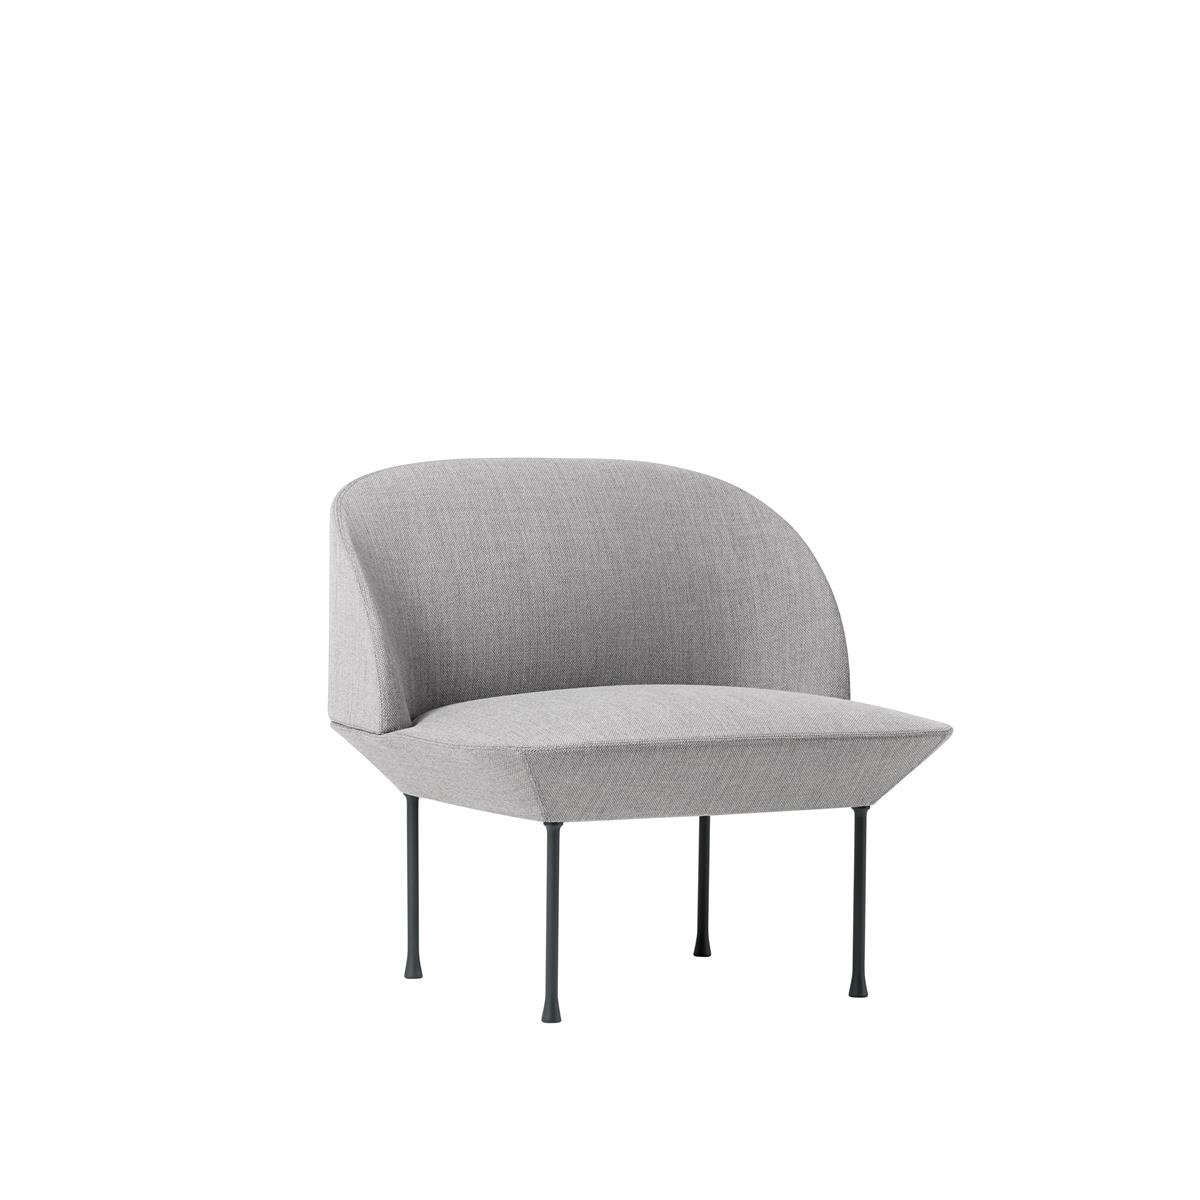 Oslo Lounge Chair - Fiord 151 & Dark Grey Legs